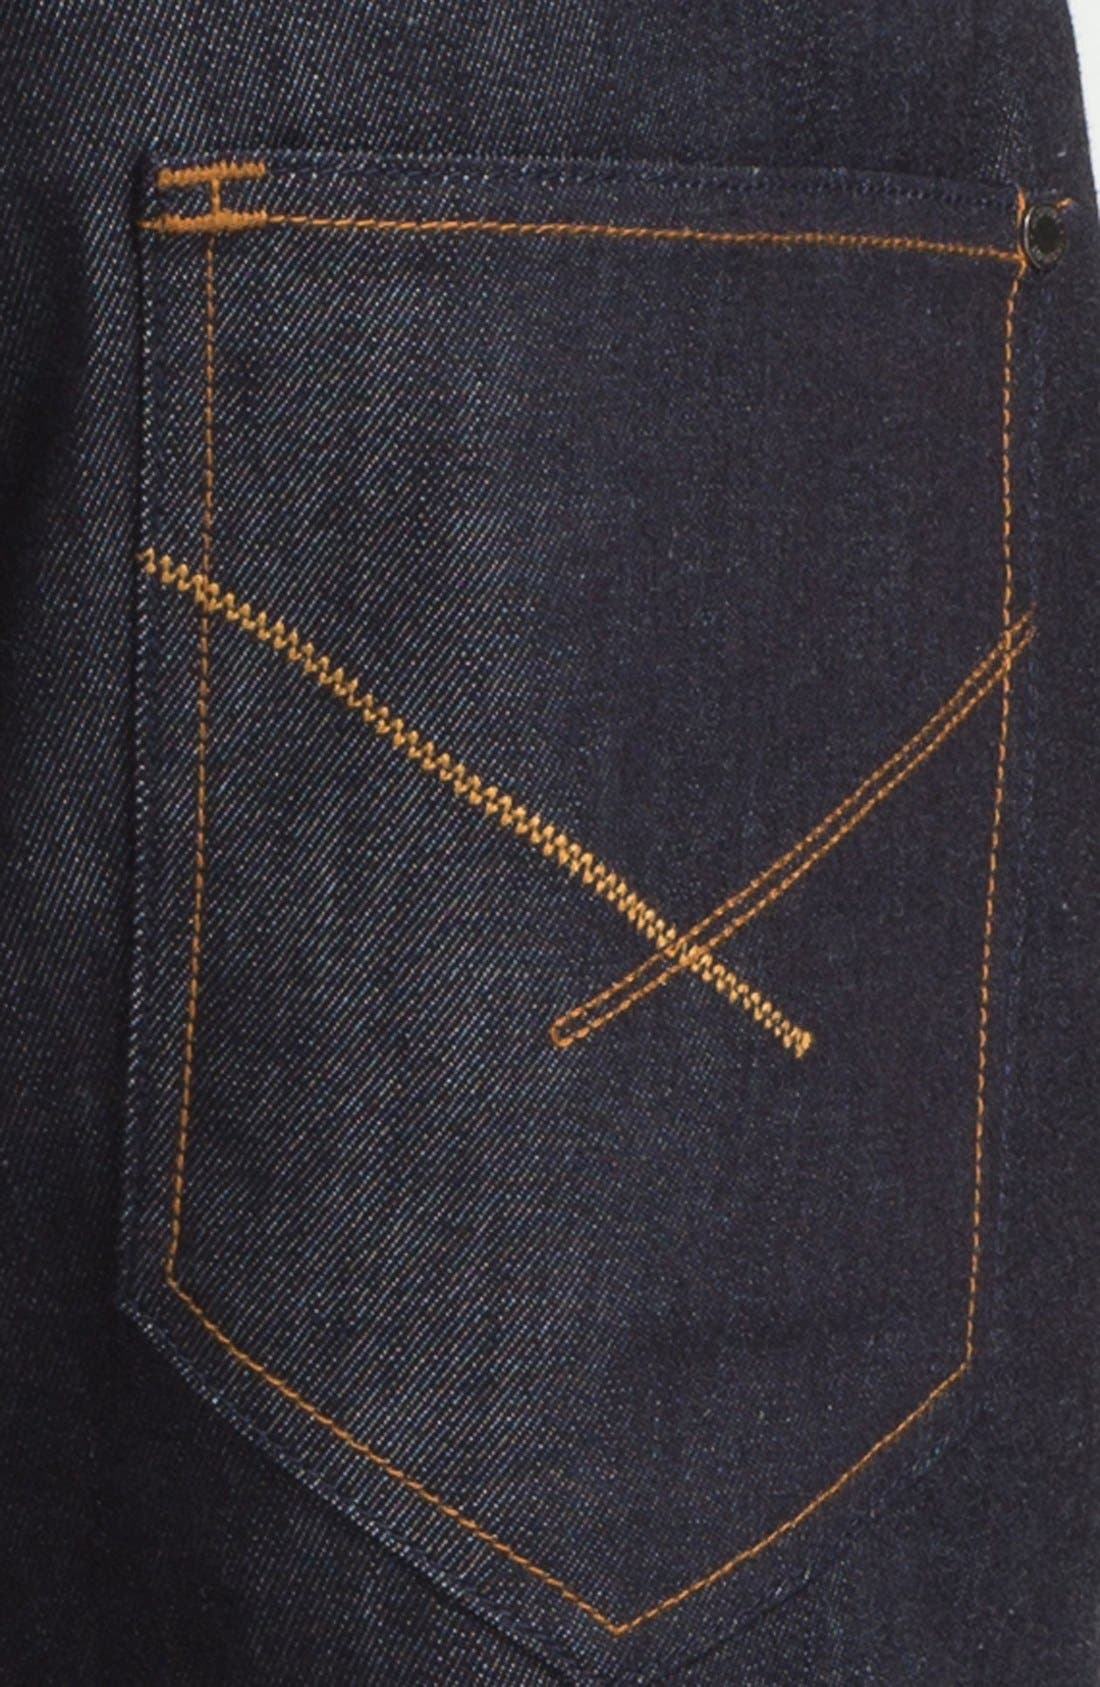 Alternate Image 4  - Insight 'Loose Joints' Slim Leg Jeans (Indigo Raw)